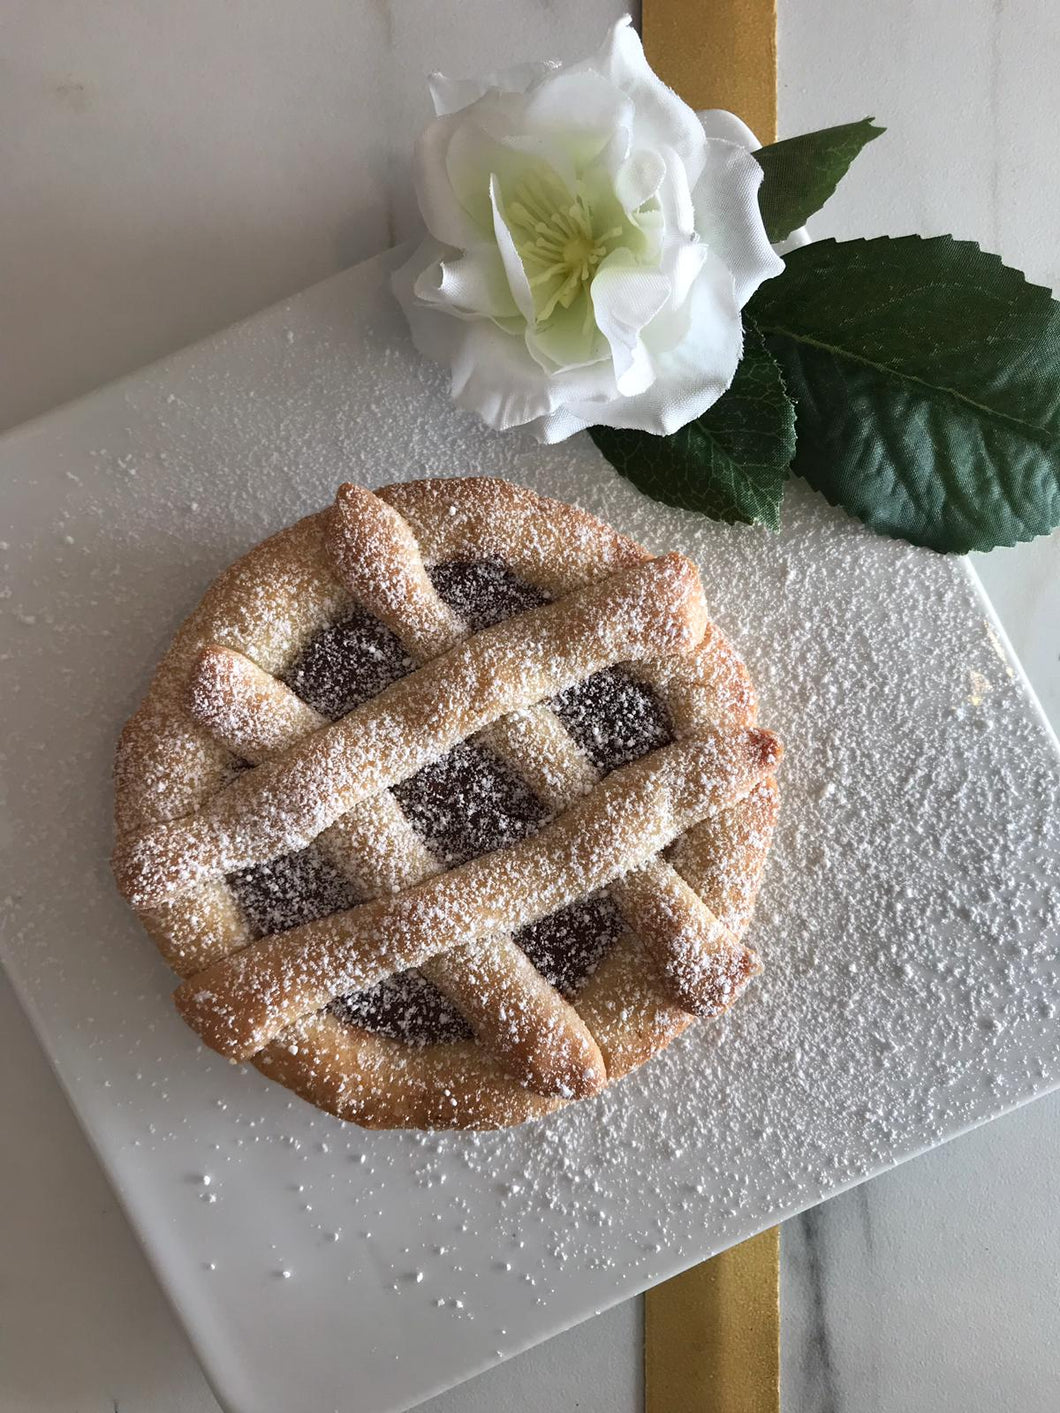 Mini Crostata alla Nutella (Nutella Shortbread Pie)